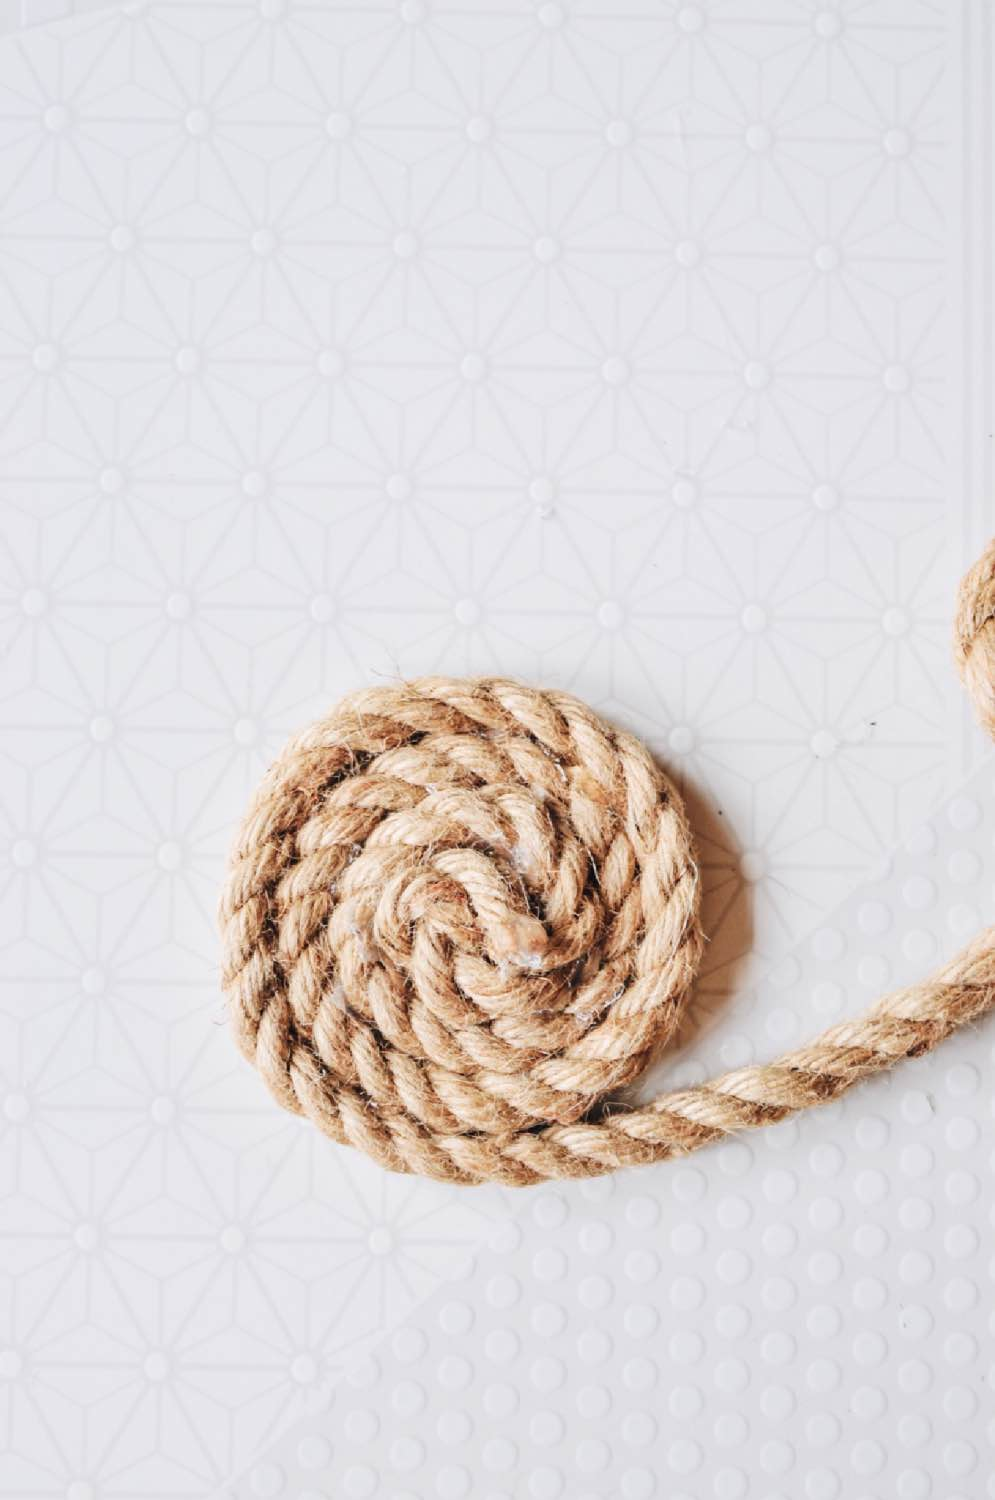 continue to wind the rope diy rope trivet craft tutorial